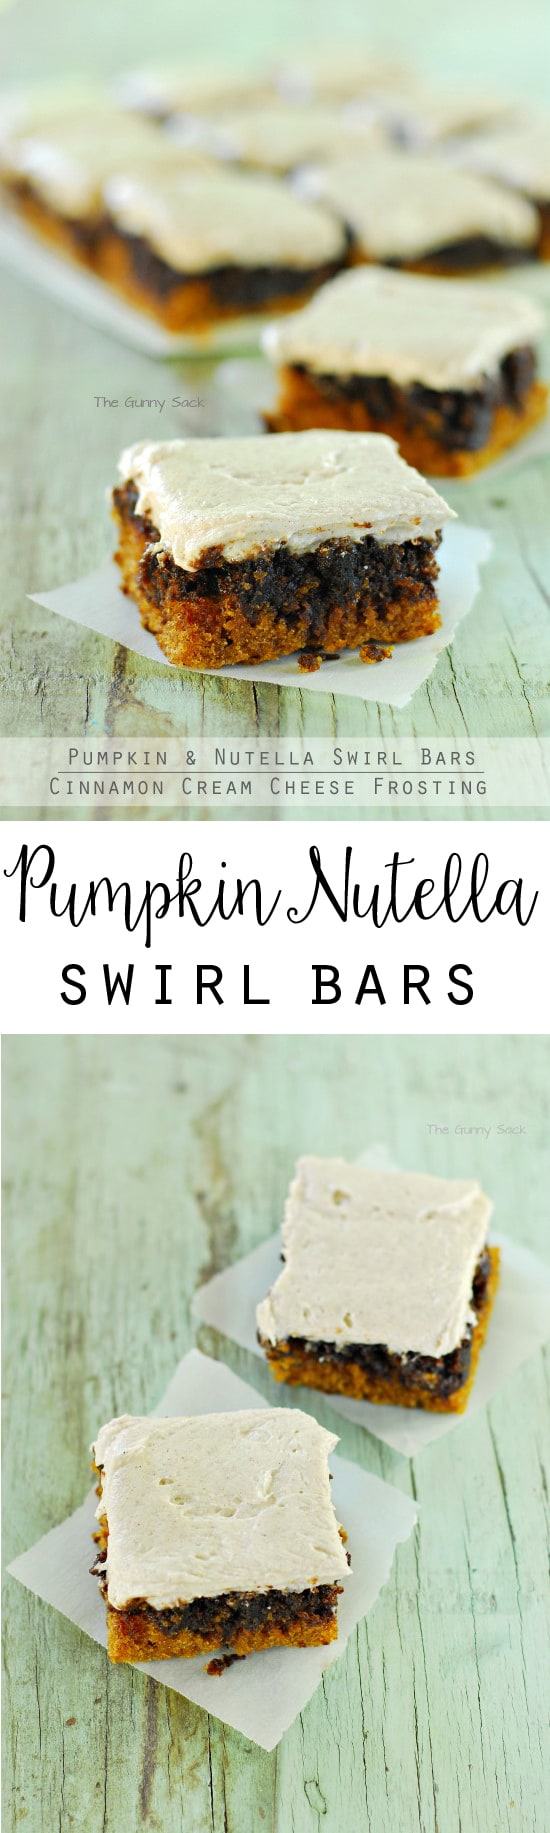 Pumpkin Nutella Swirl Bars